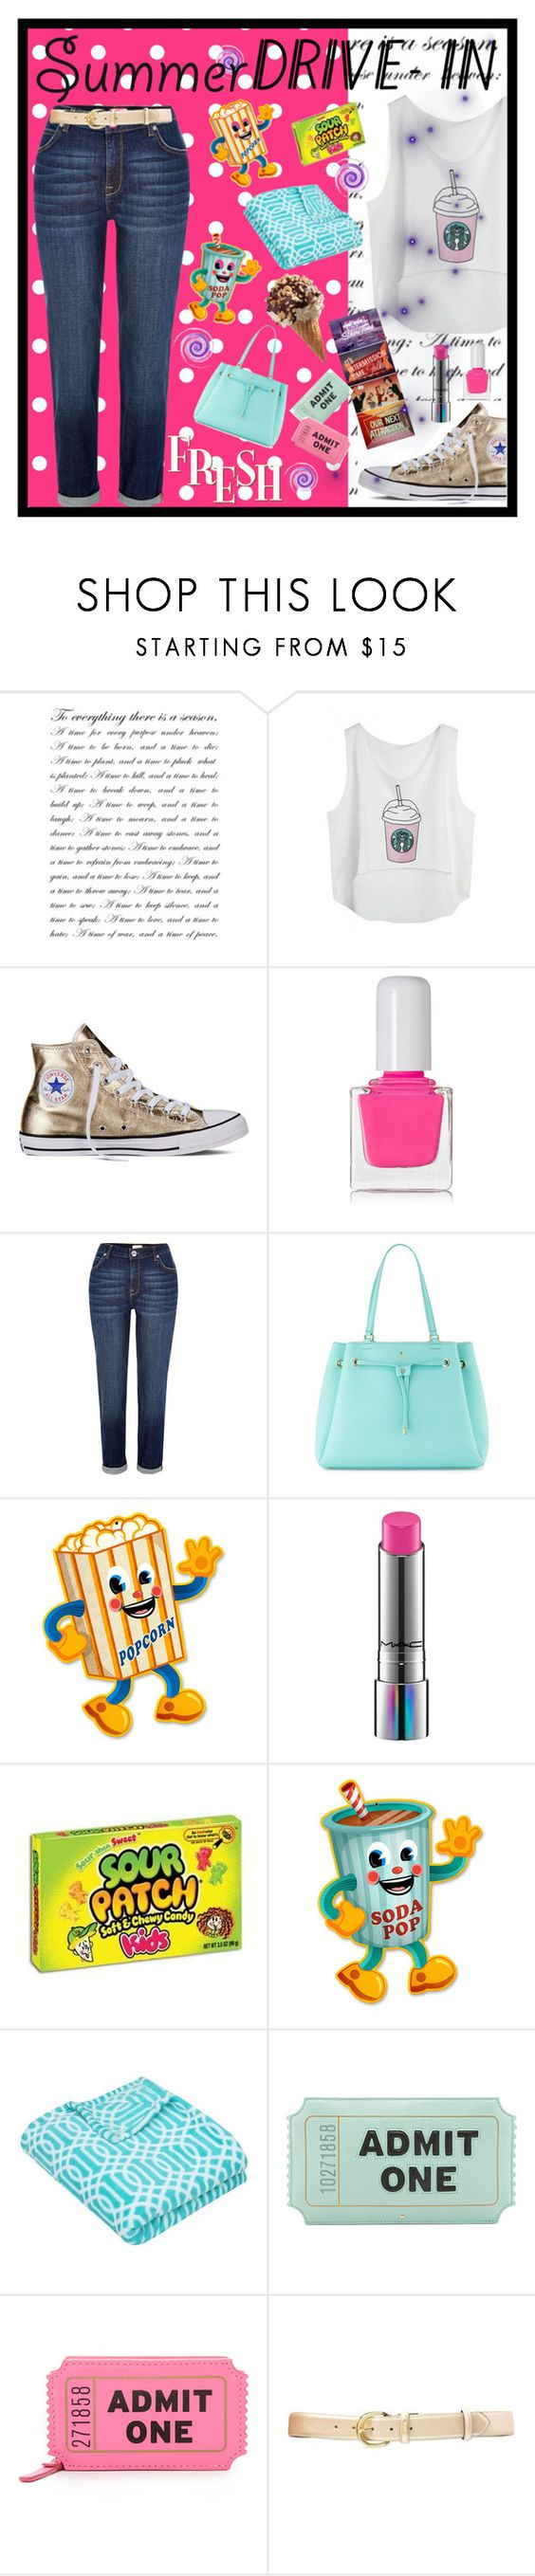 """Drive-in"" by fashion-holy ❤ liked on Polyvore featuring Converse, tenoverten, River Island, Kate Spade, MAC Cosmetics and Lauren Ralph Lauren"